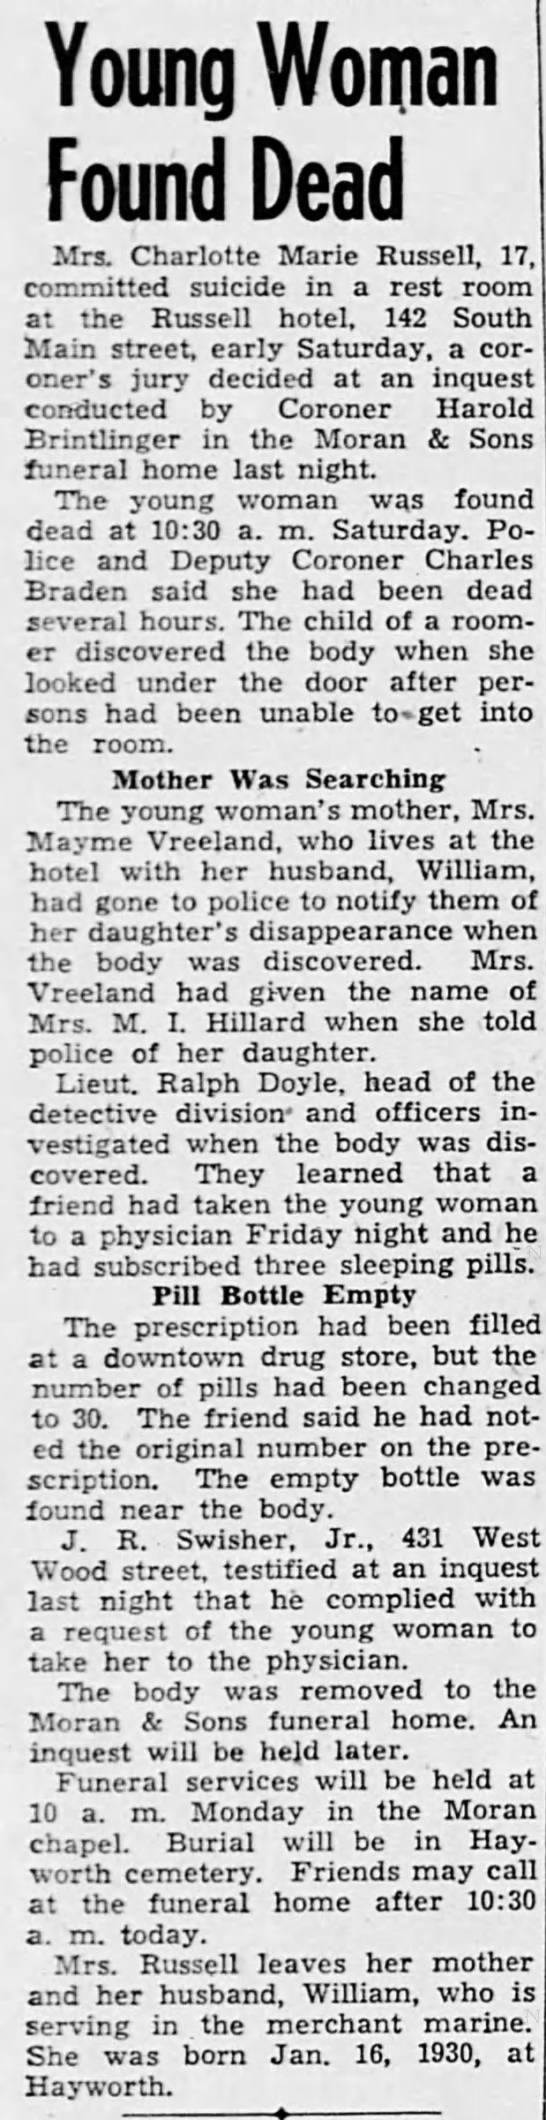 Russell, Charlotte Marie Hilliard obit Decatur Daily Review, 2 Mar 1947 page 10 col 1 -